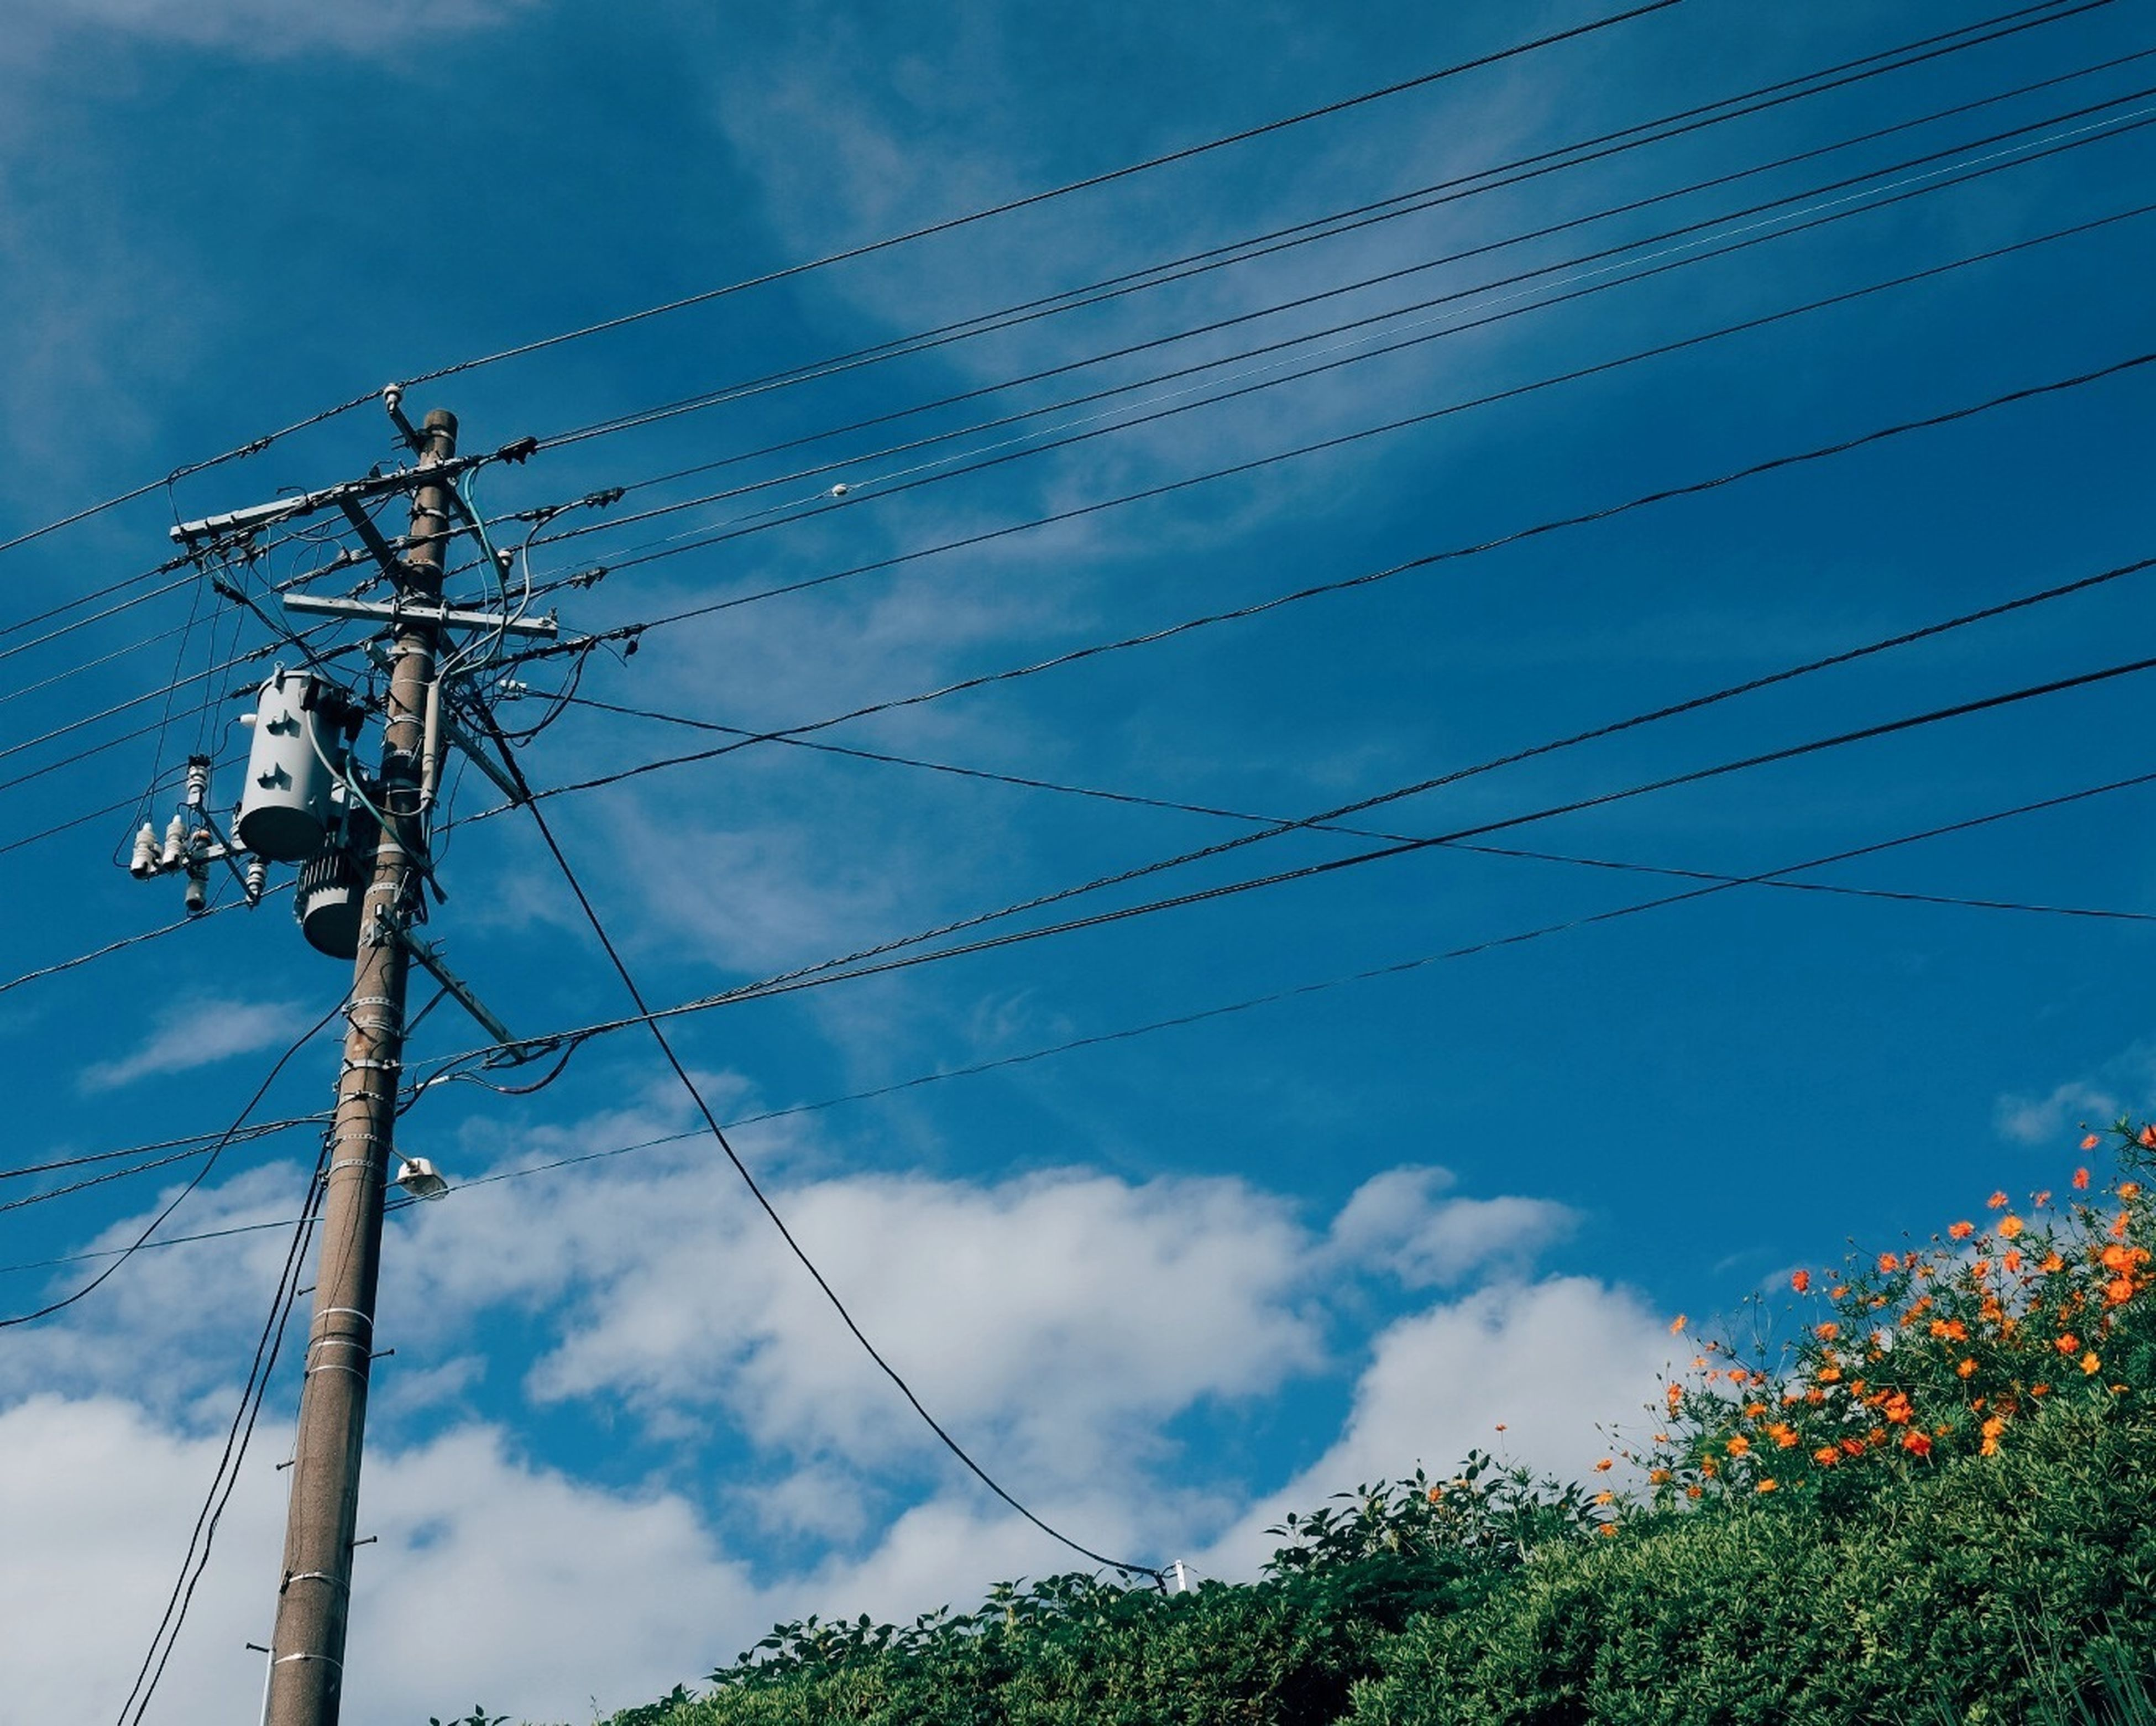 power line, electricity pylon, electricity, power supply, low angle view, cable, connection, sky, fuel and power generation, cloud - sky, technology, power cable, cloudy, blue, cloud, complexity, telephone pole, nature, no people, outdoors